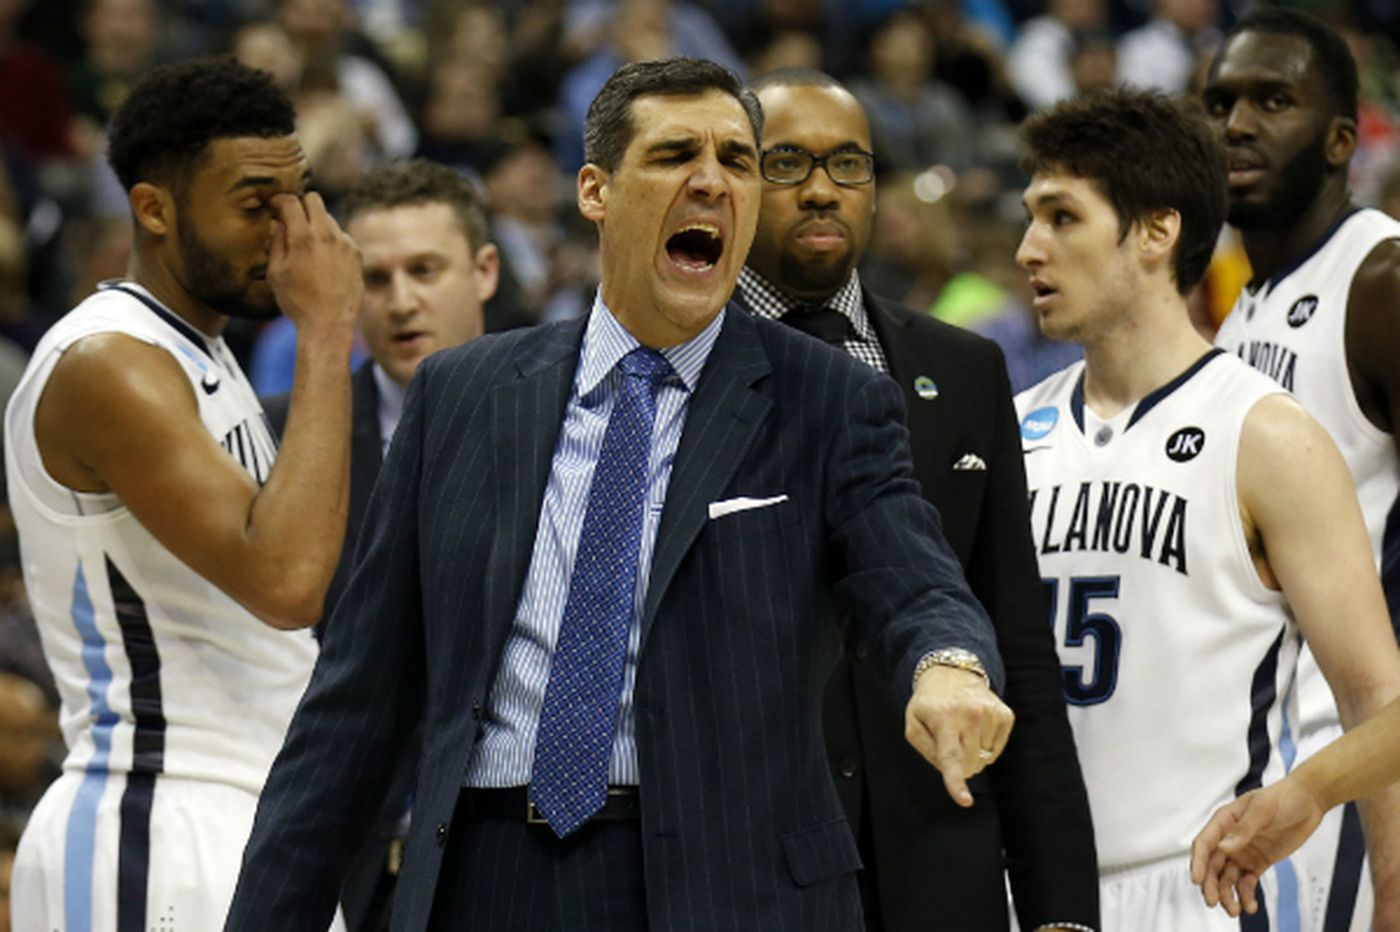 Wright's not to blame for Villanova's early NCAA Tournament exit